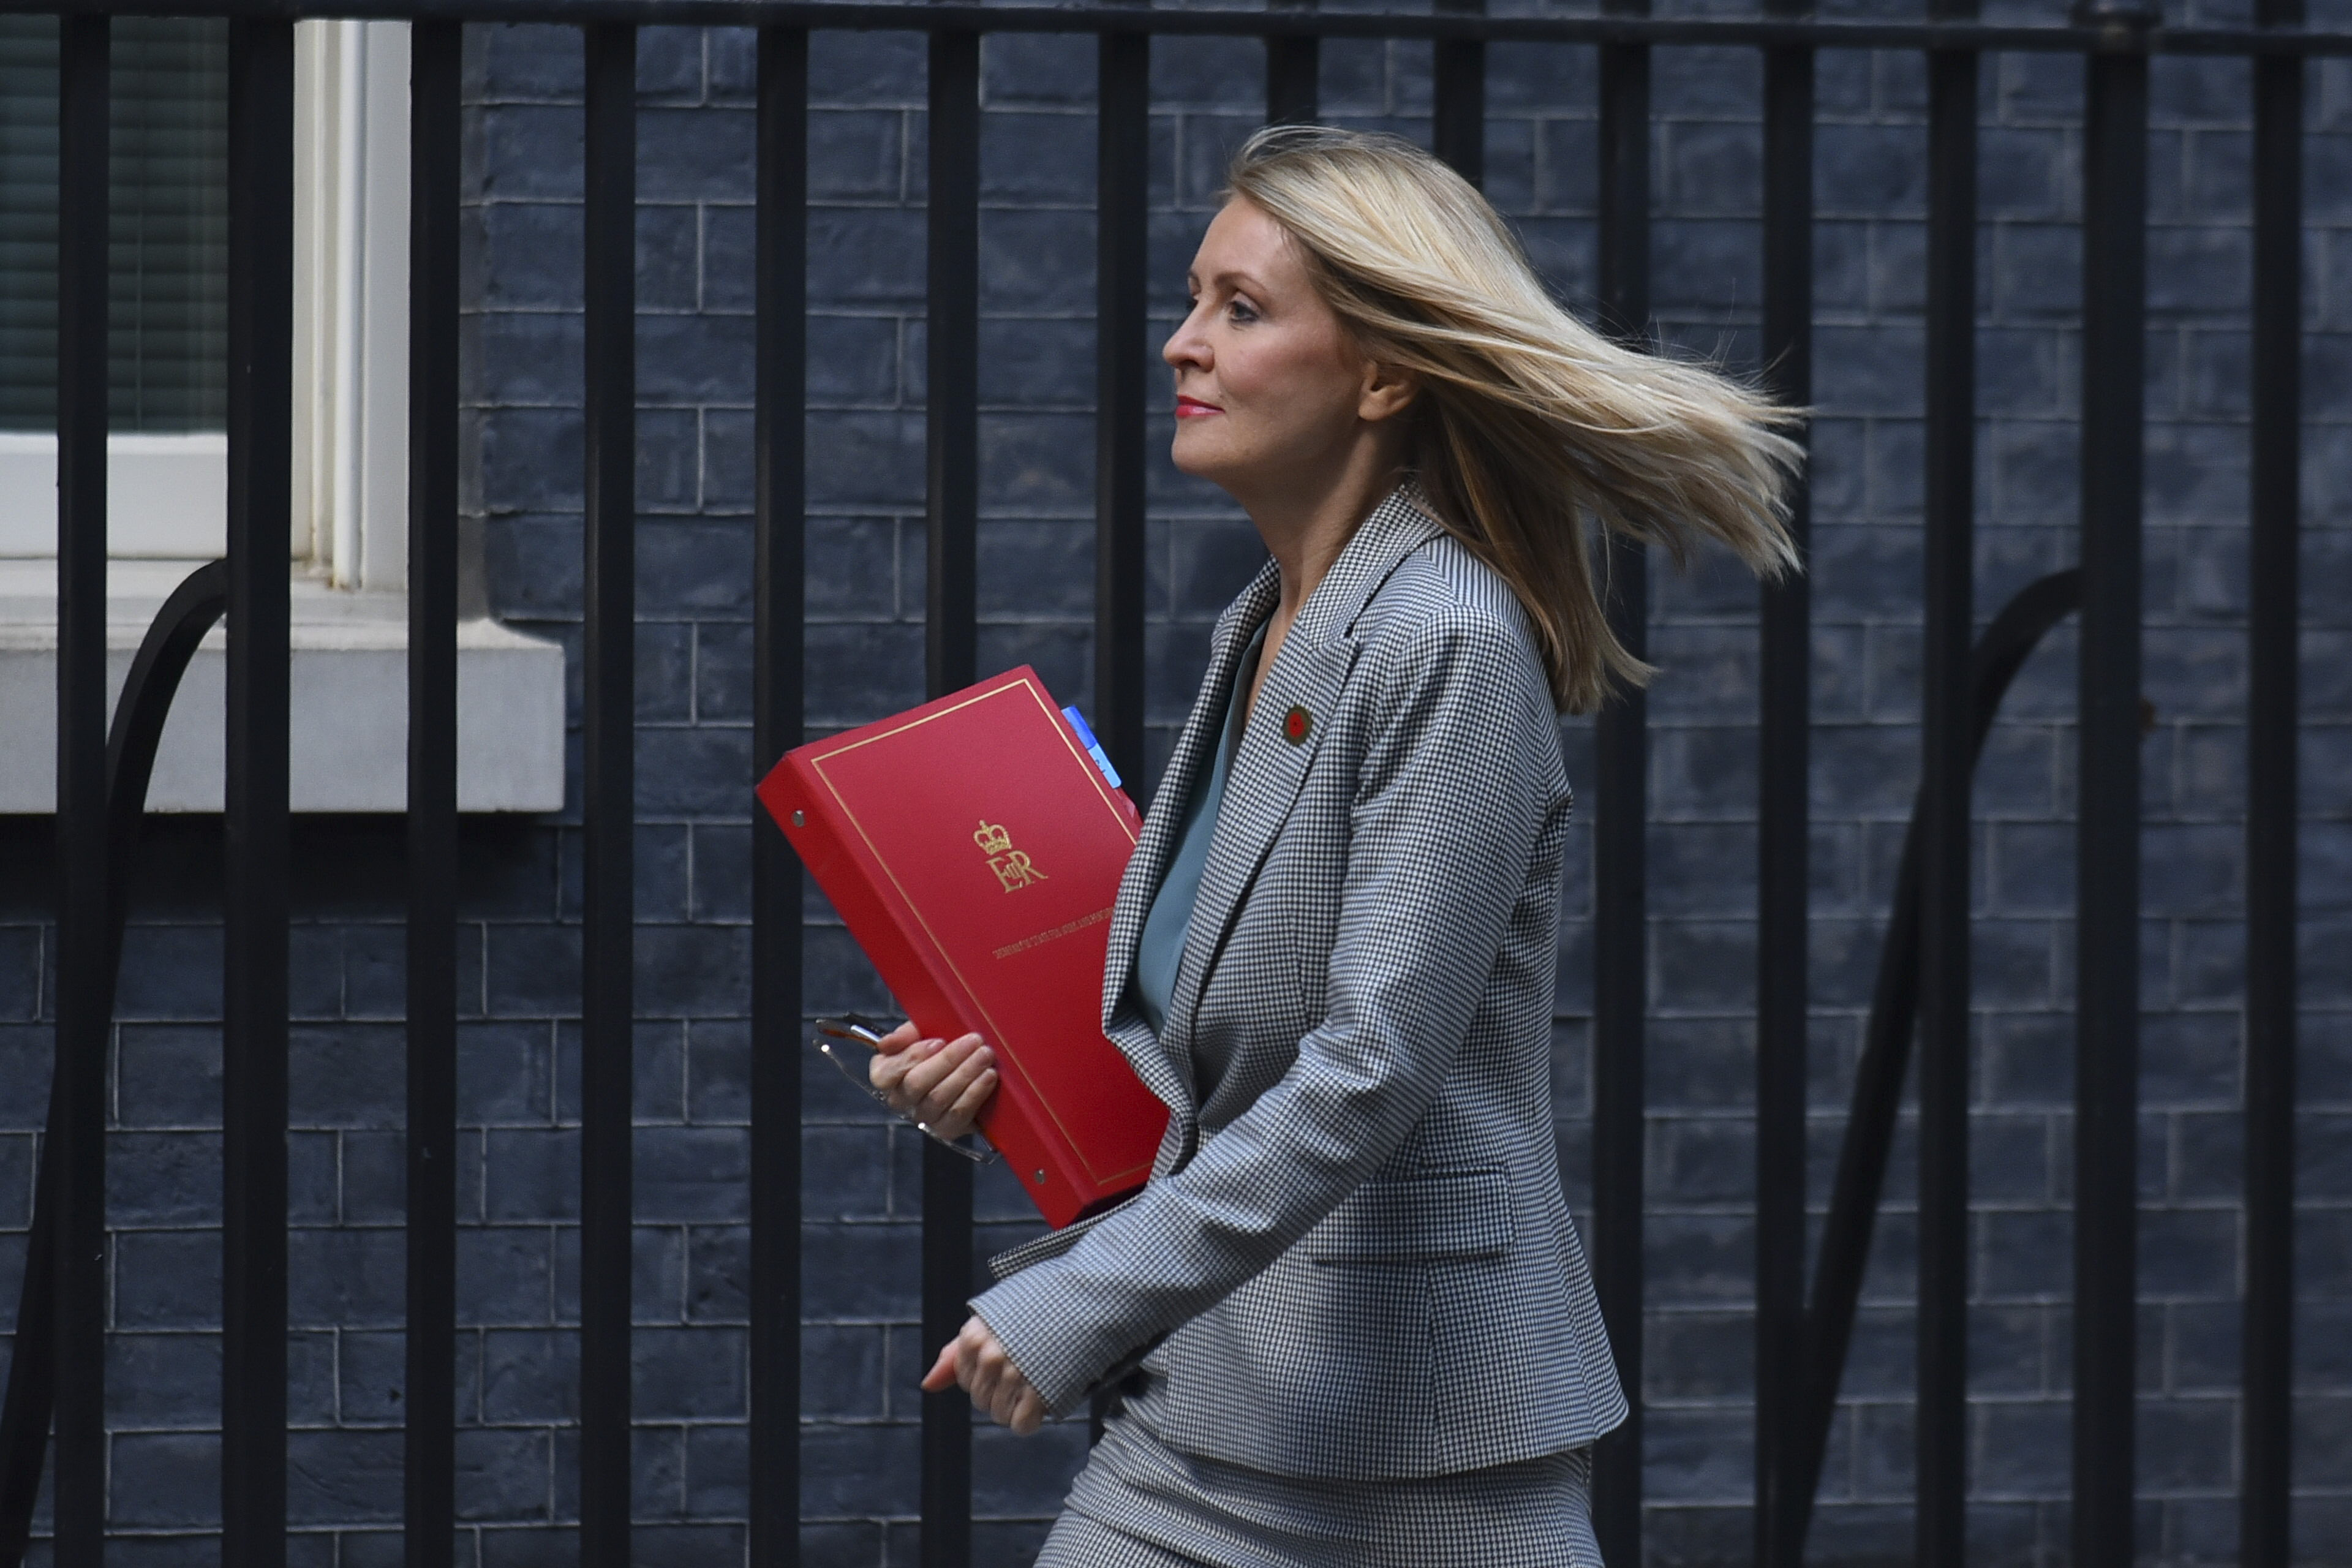 Work and Pensions Secretary Esther McVey. Credit: PA